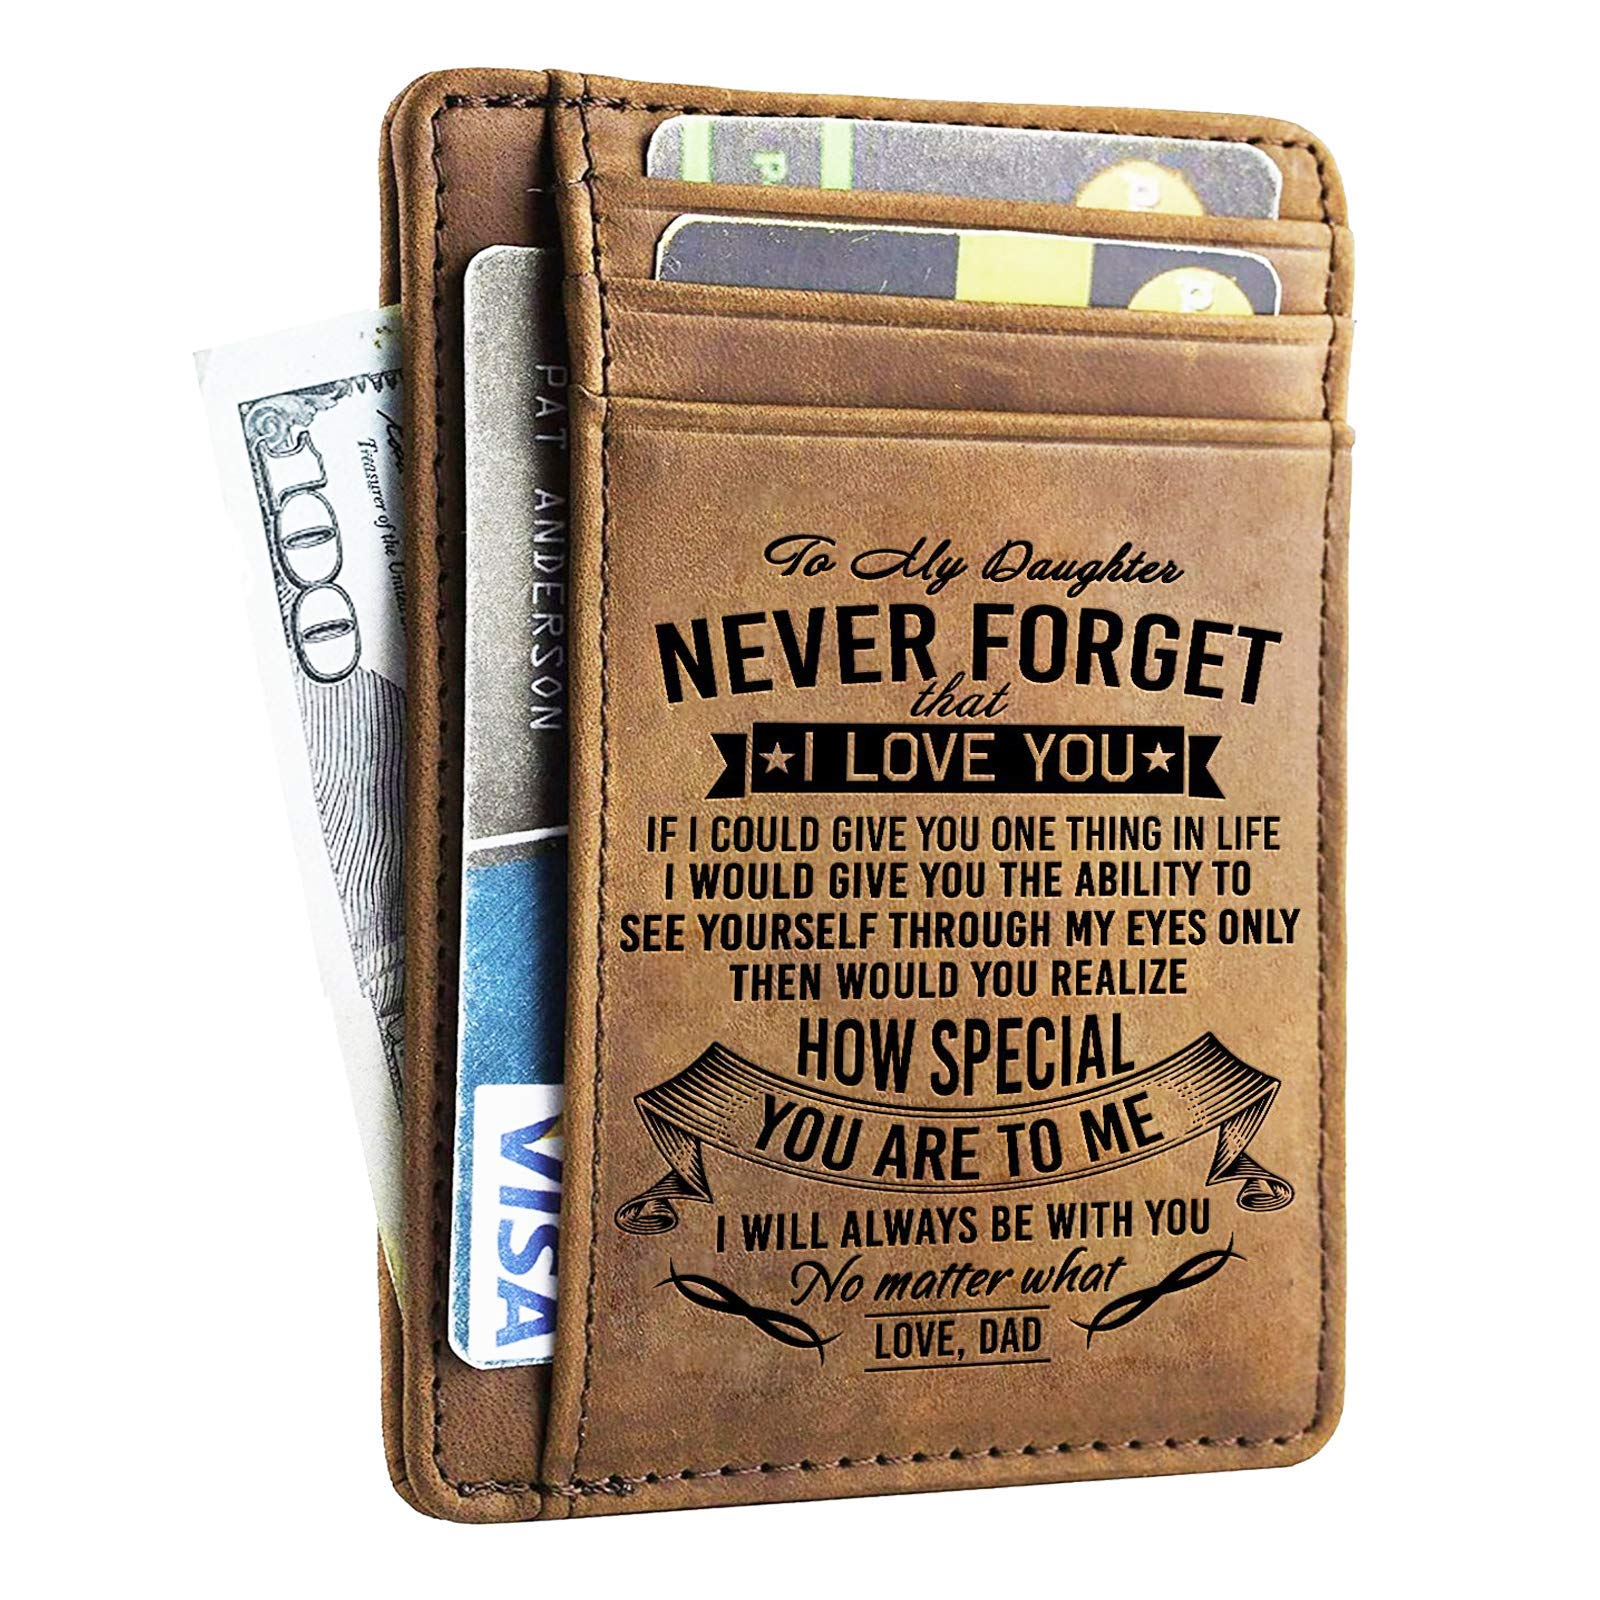 Engraved Leather Front Pocket Wallet for Daughter - Gift for Daughter From Dad - Never Forget That I Love You. (A - Original)